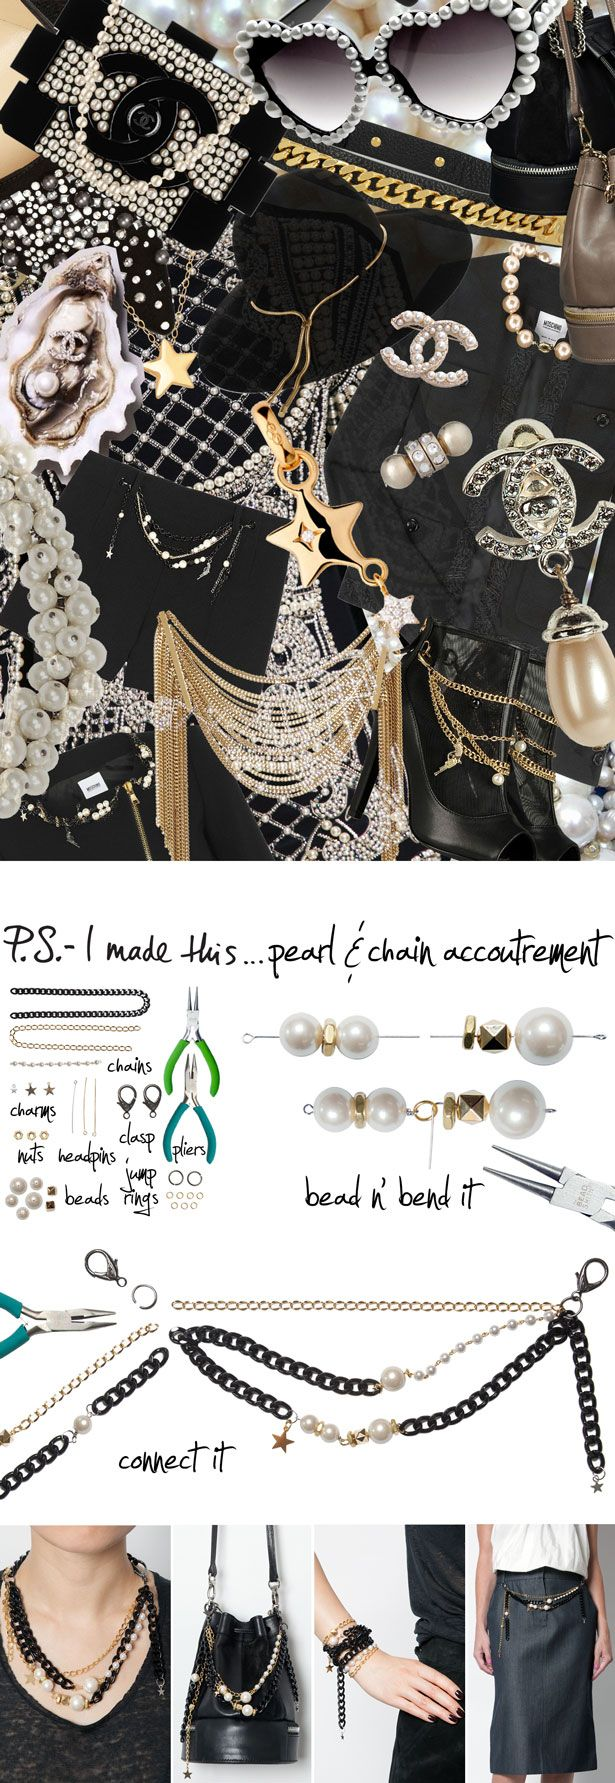 P.S.- I made this...Pearl & Chain Accoutrement #PSIMADETHIS #DIY #INSPIRATION #COLLAGE